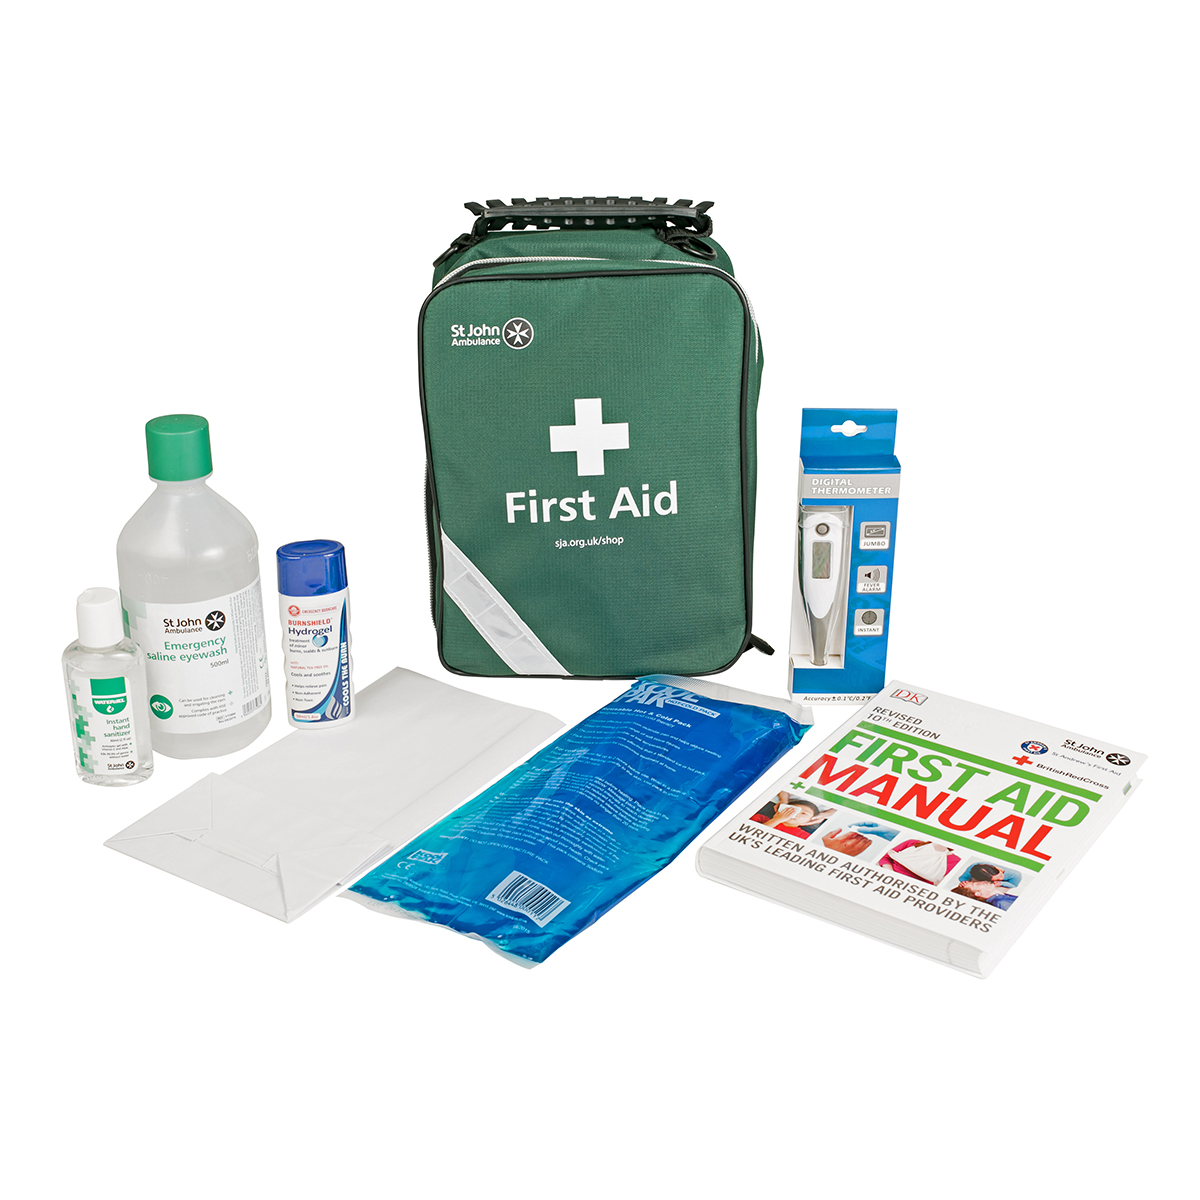 Chilcare First Aid Kit Bundle